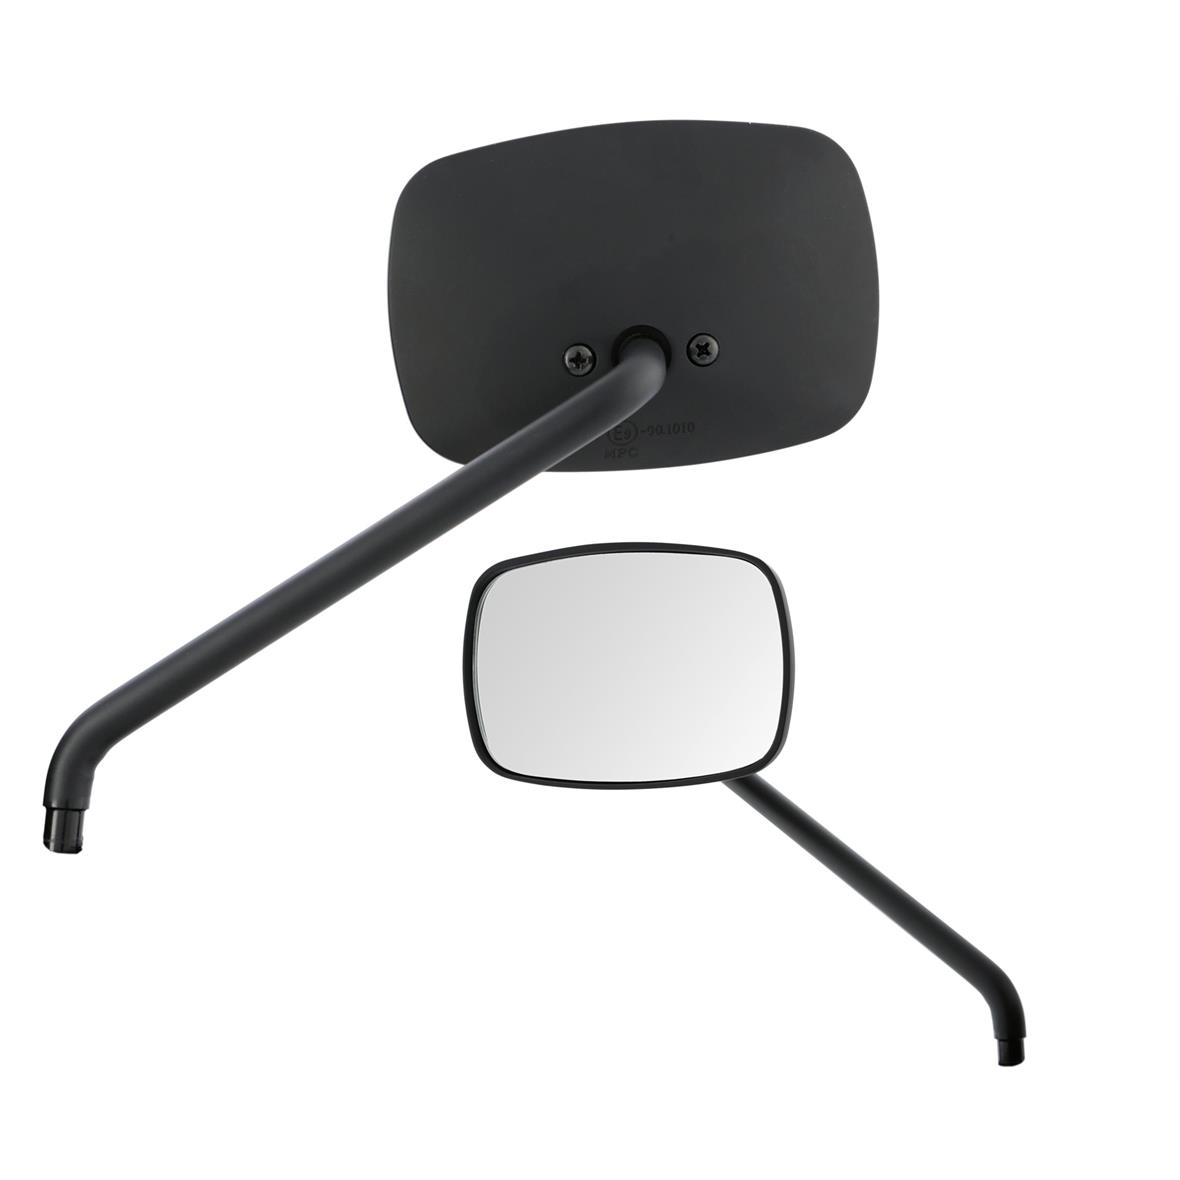 Product Image for 'Mirror rightTitle'